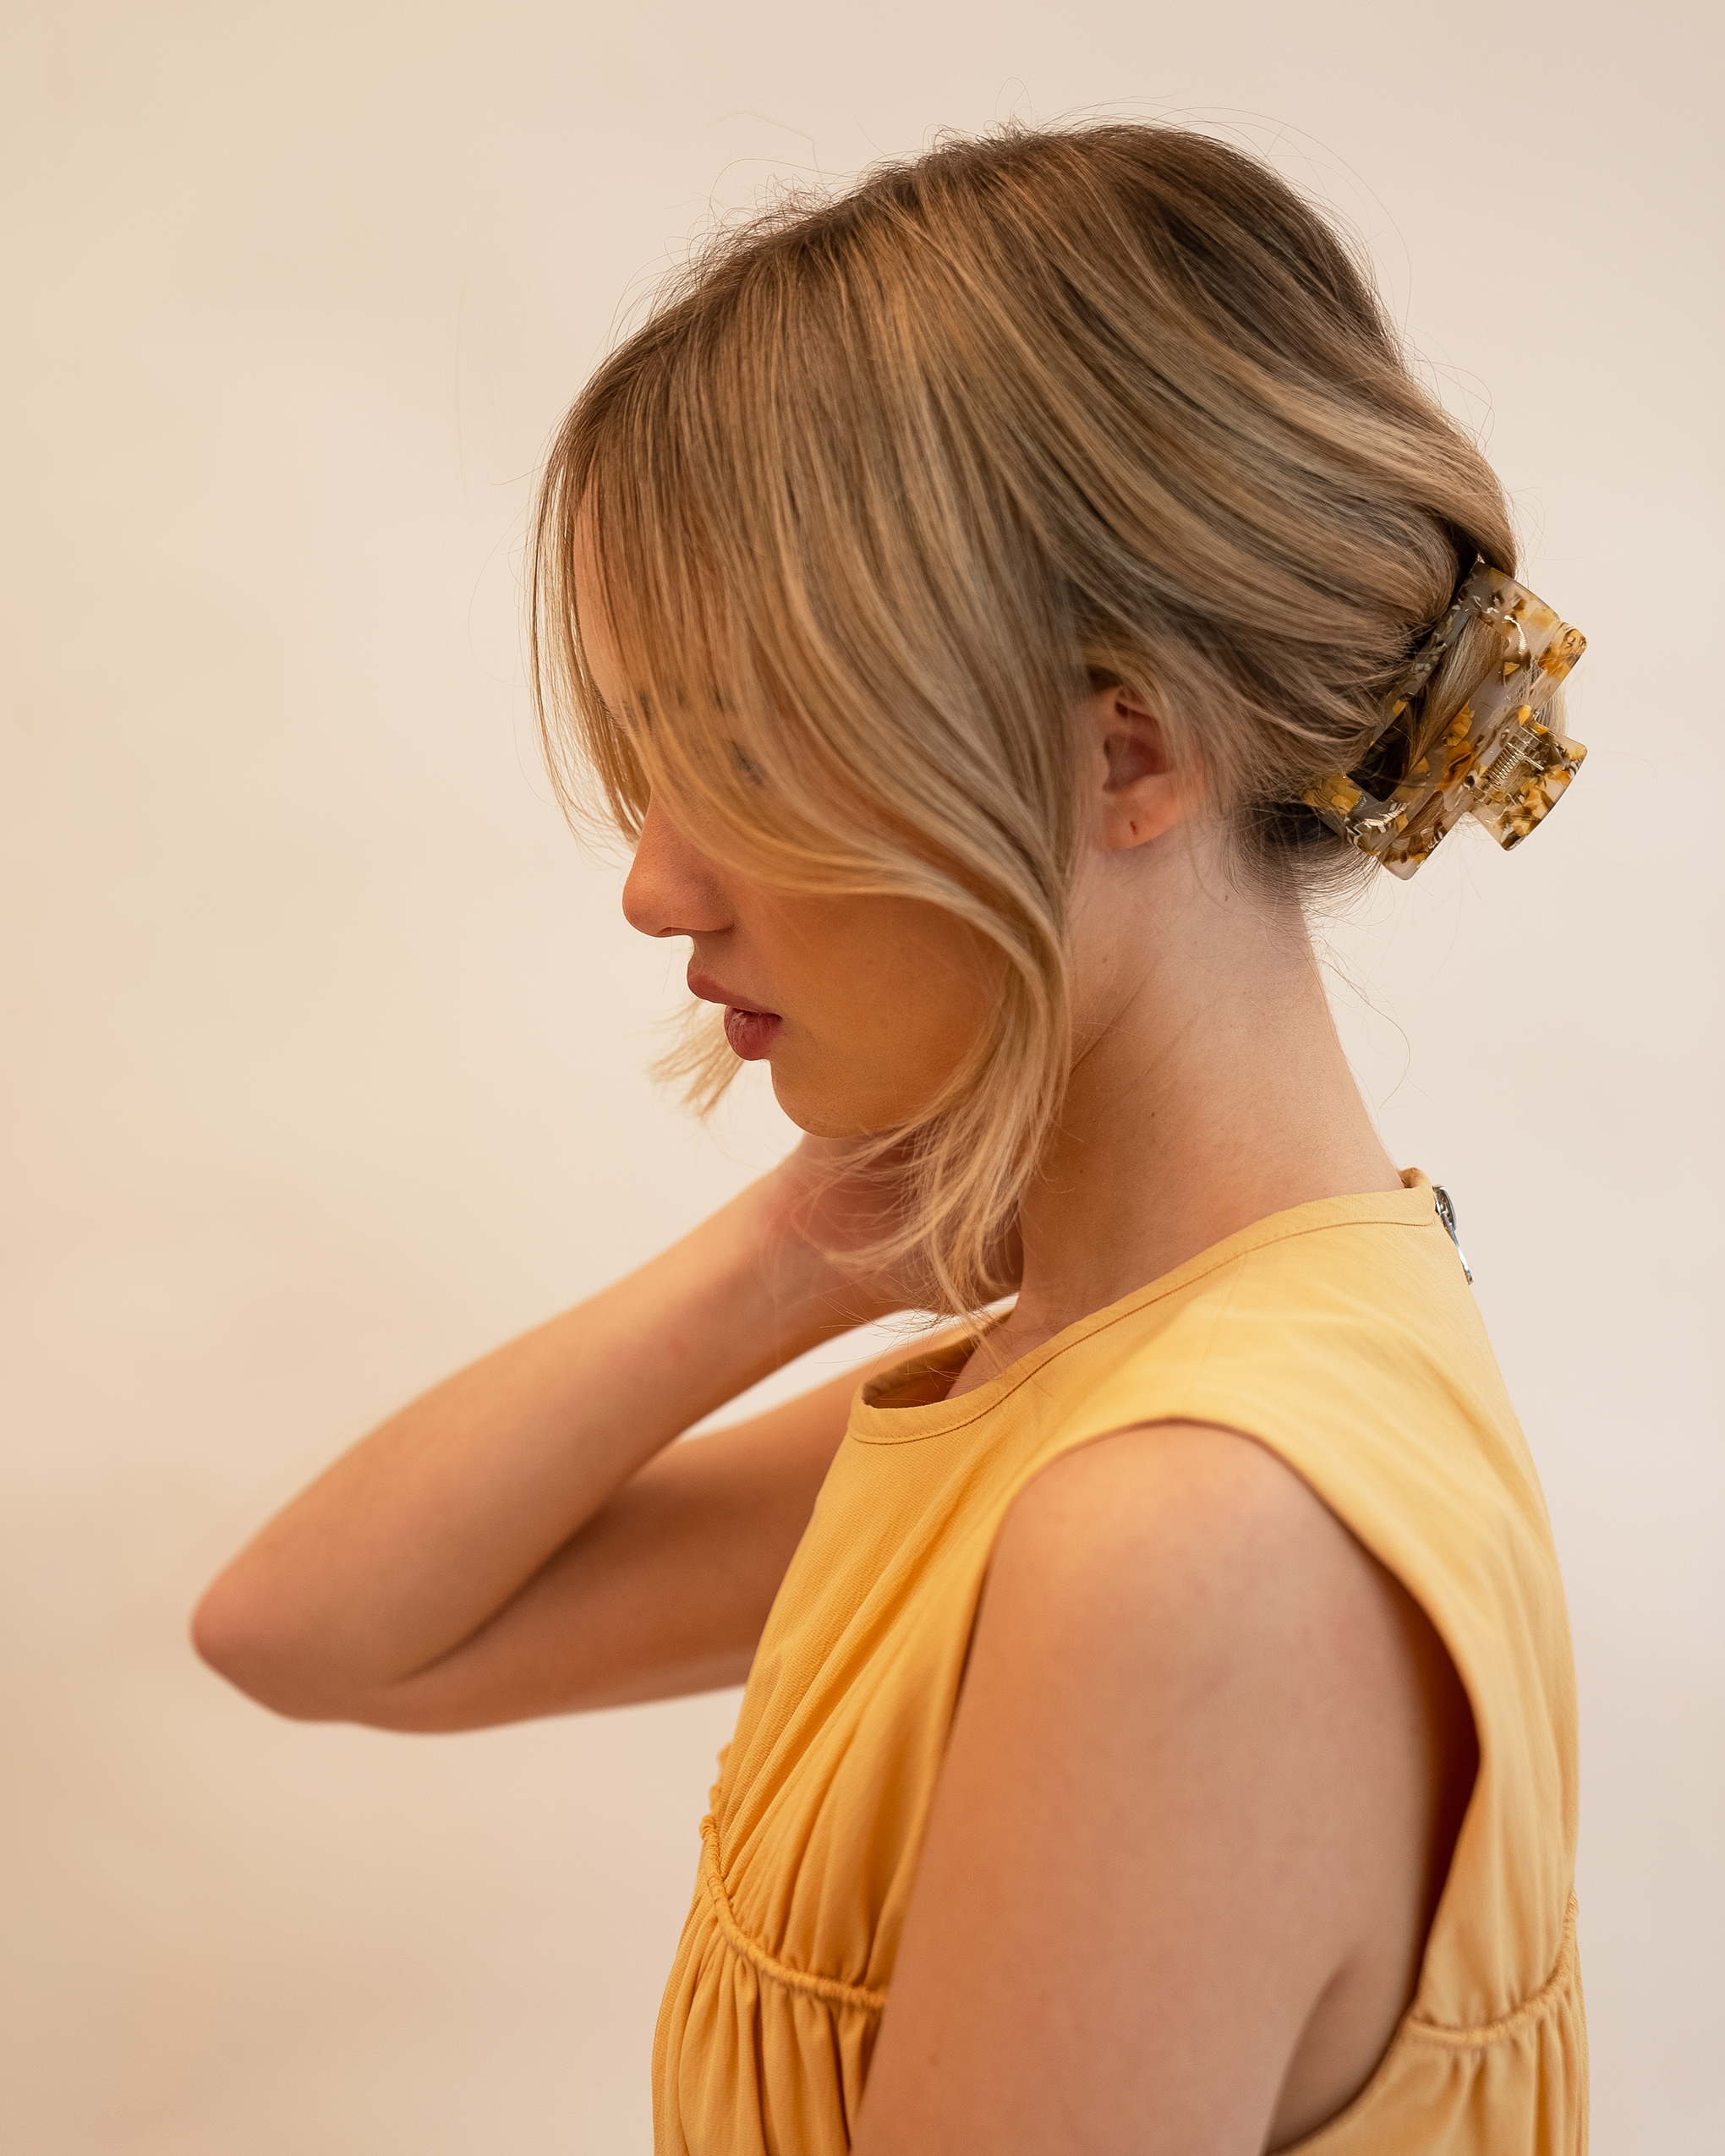 Model wearing Emin + Paul honeycomb square hair claw.